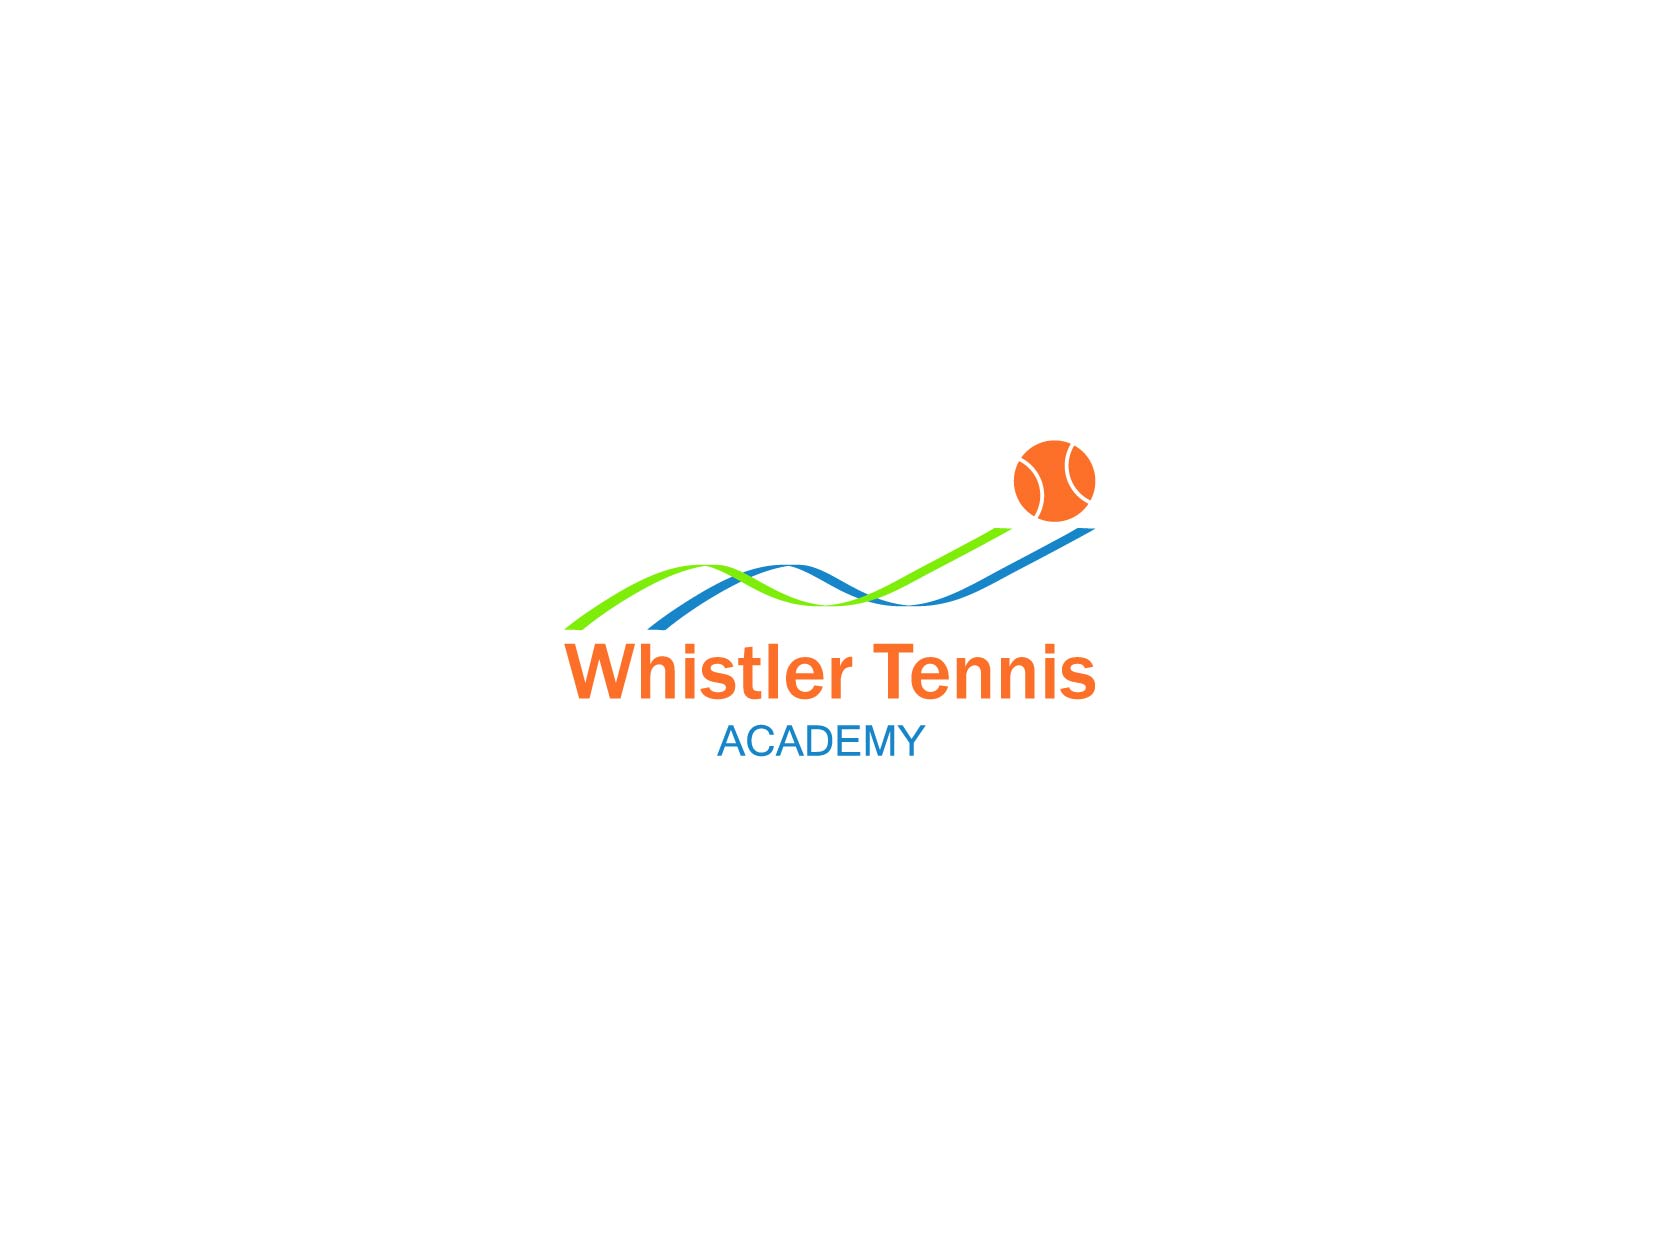 Logo Design by Osi Indra - Entry No. 51 in the Logo Design Contest Imaginative Logo Design for Whistler Tennis Academy.